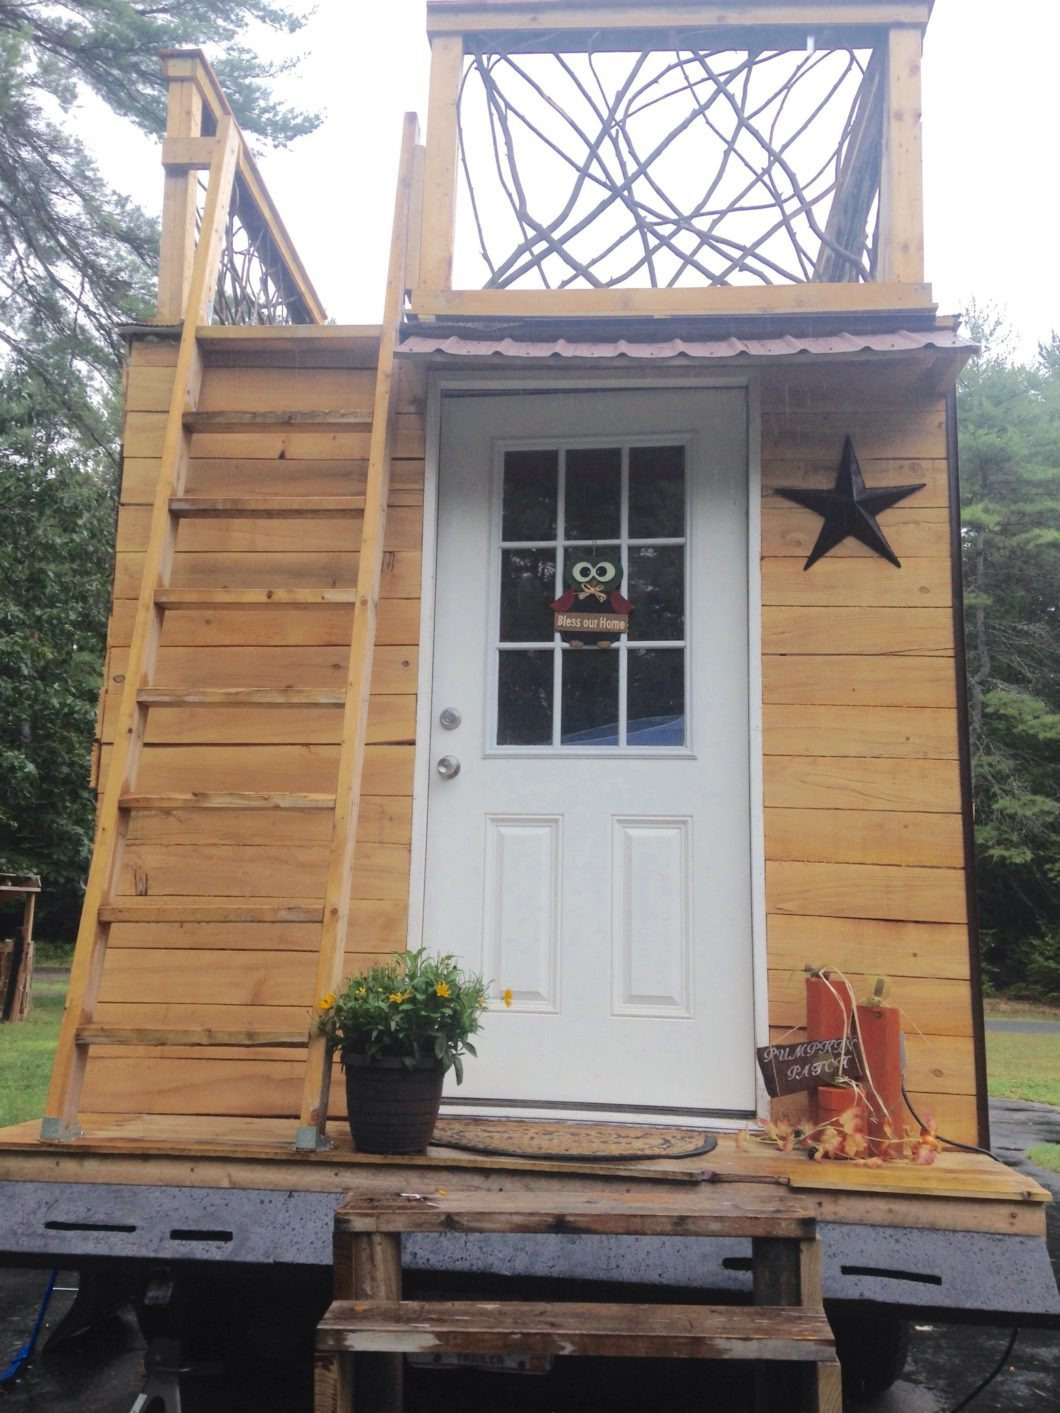 Small Affordable Houses to Build Fresh Tiny House Living On A Bud – 10 Inexpensive Small Homes